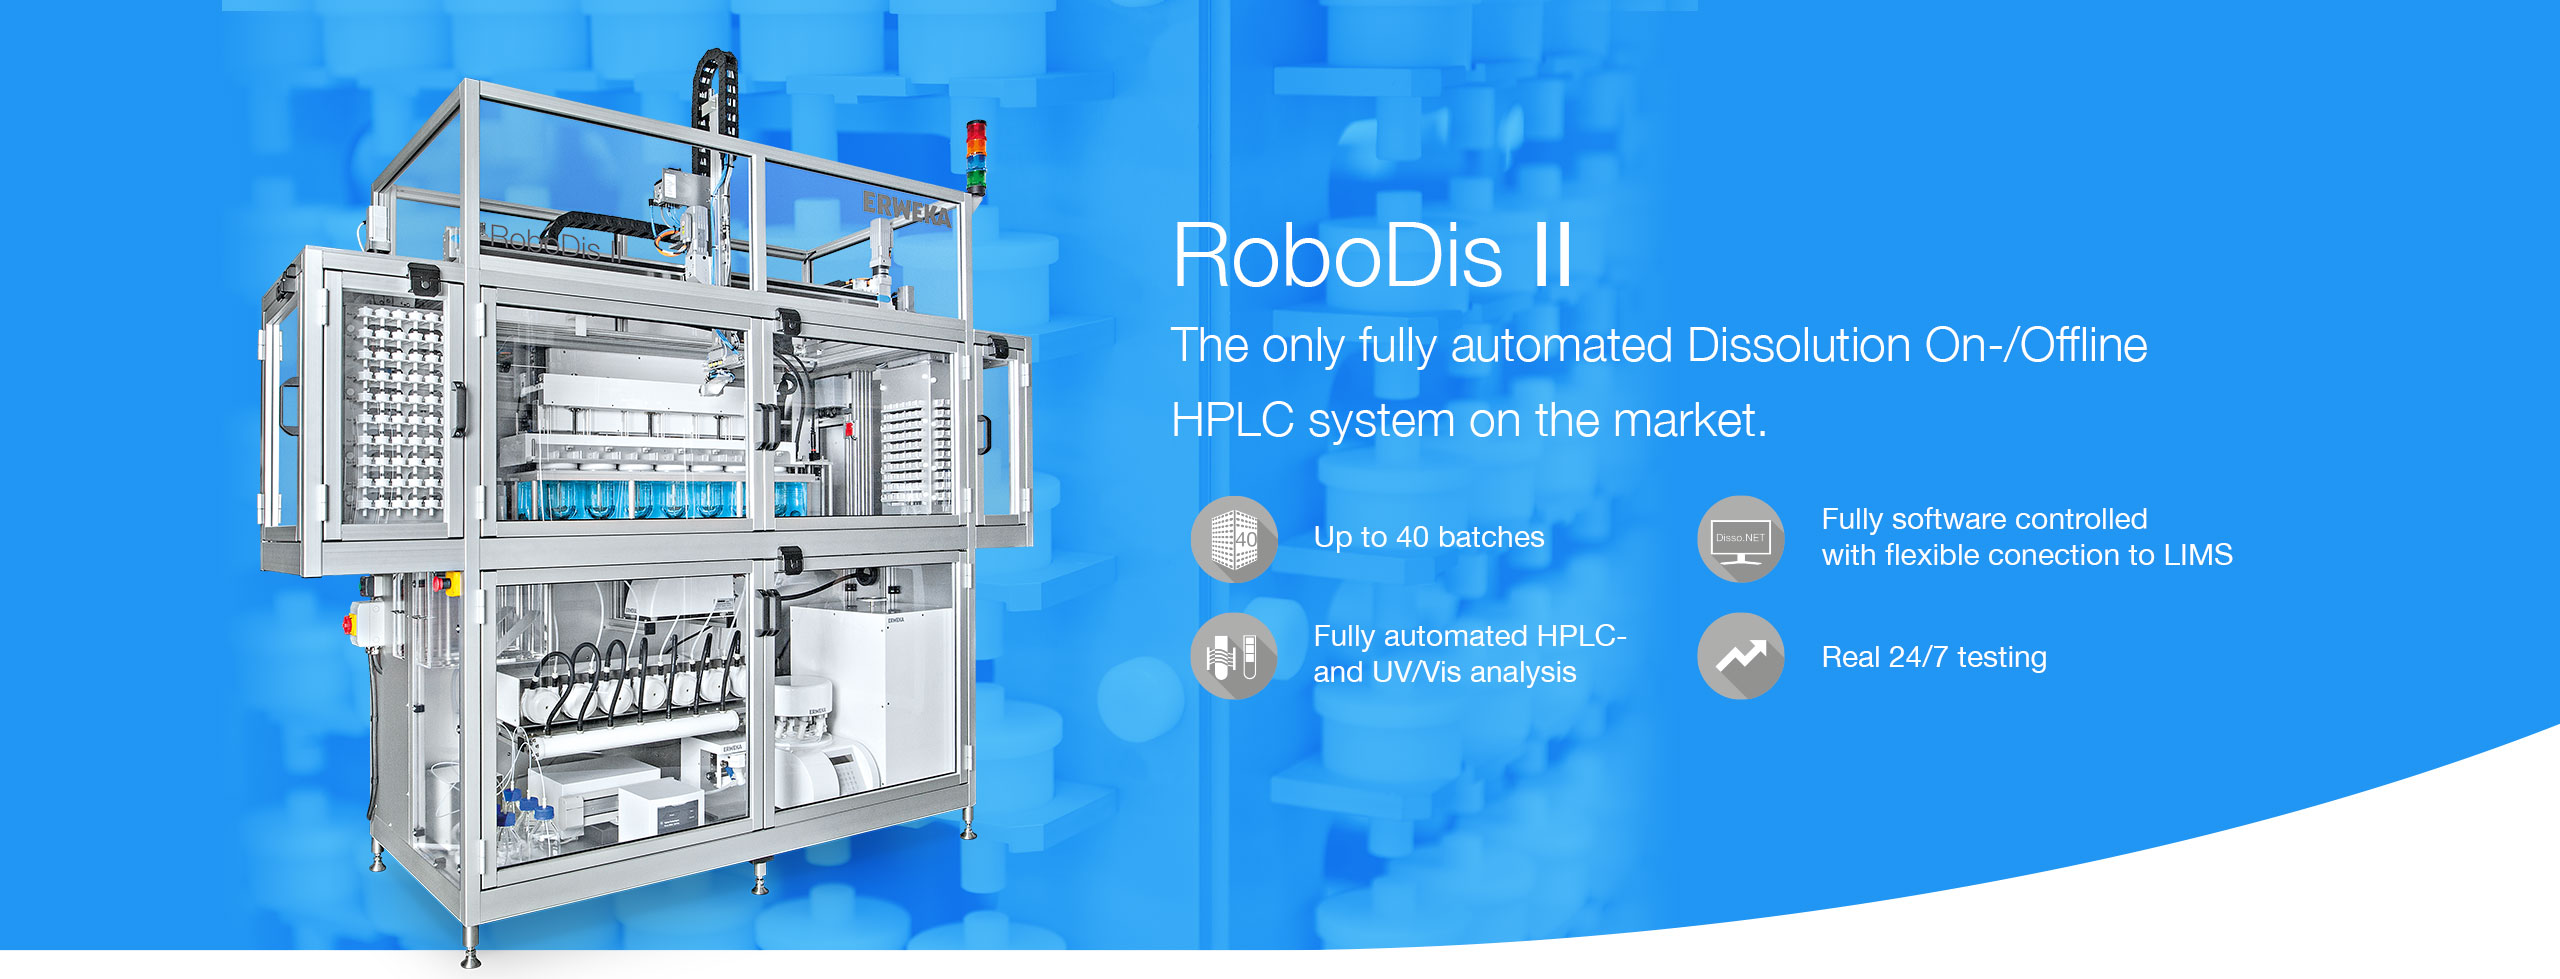 RoboDis II - The only fully automated HPLC system on the market.